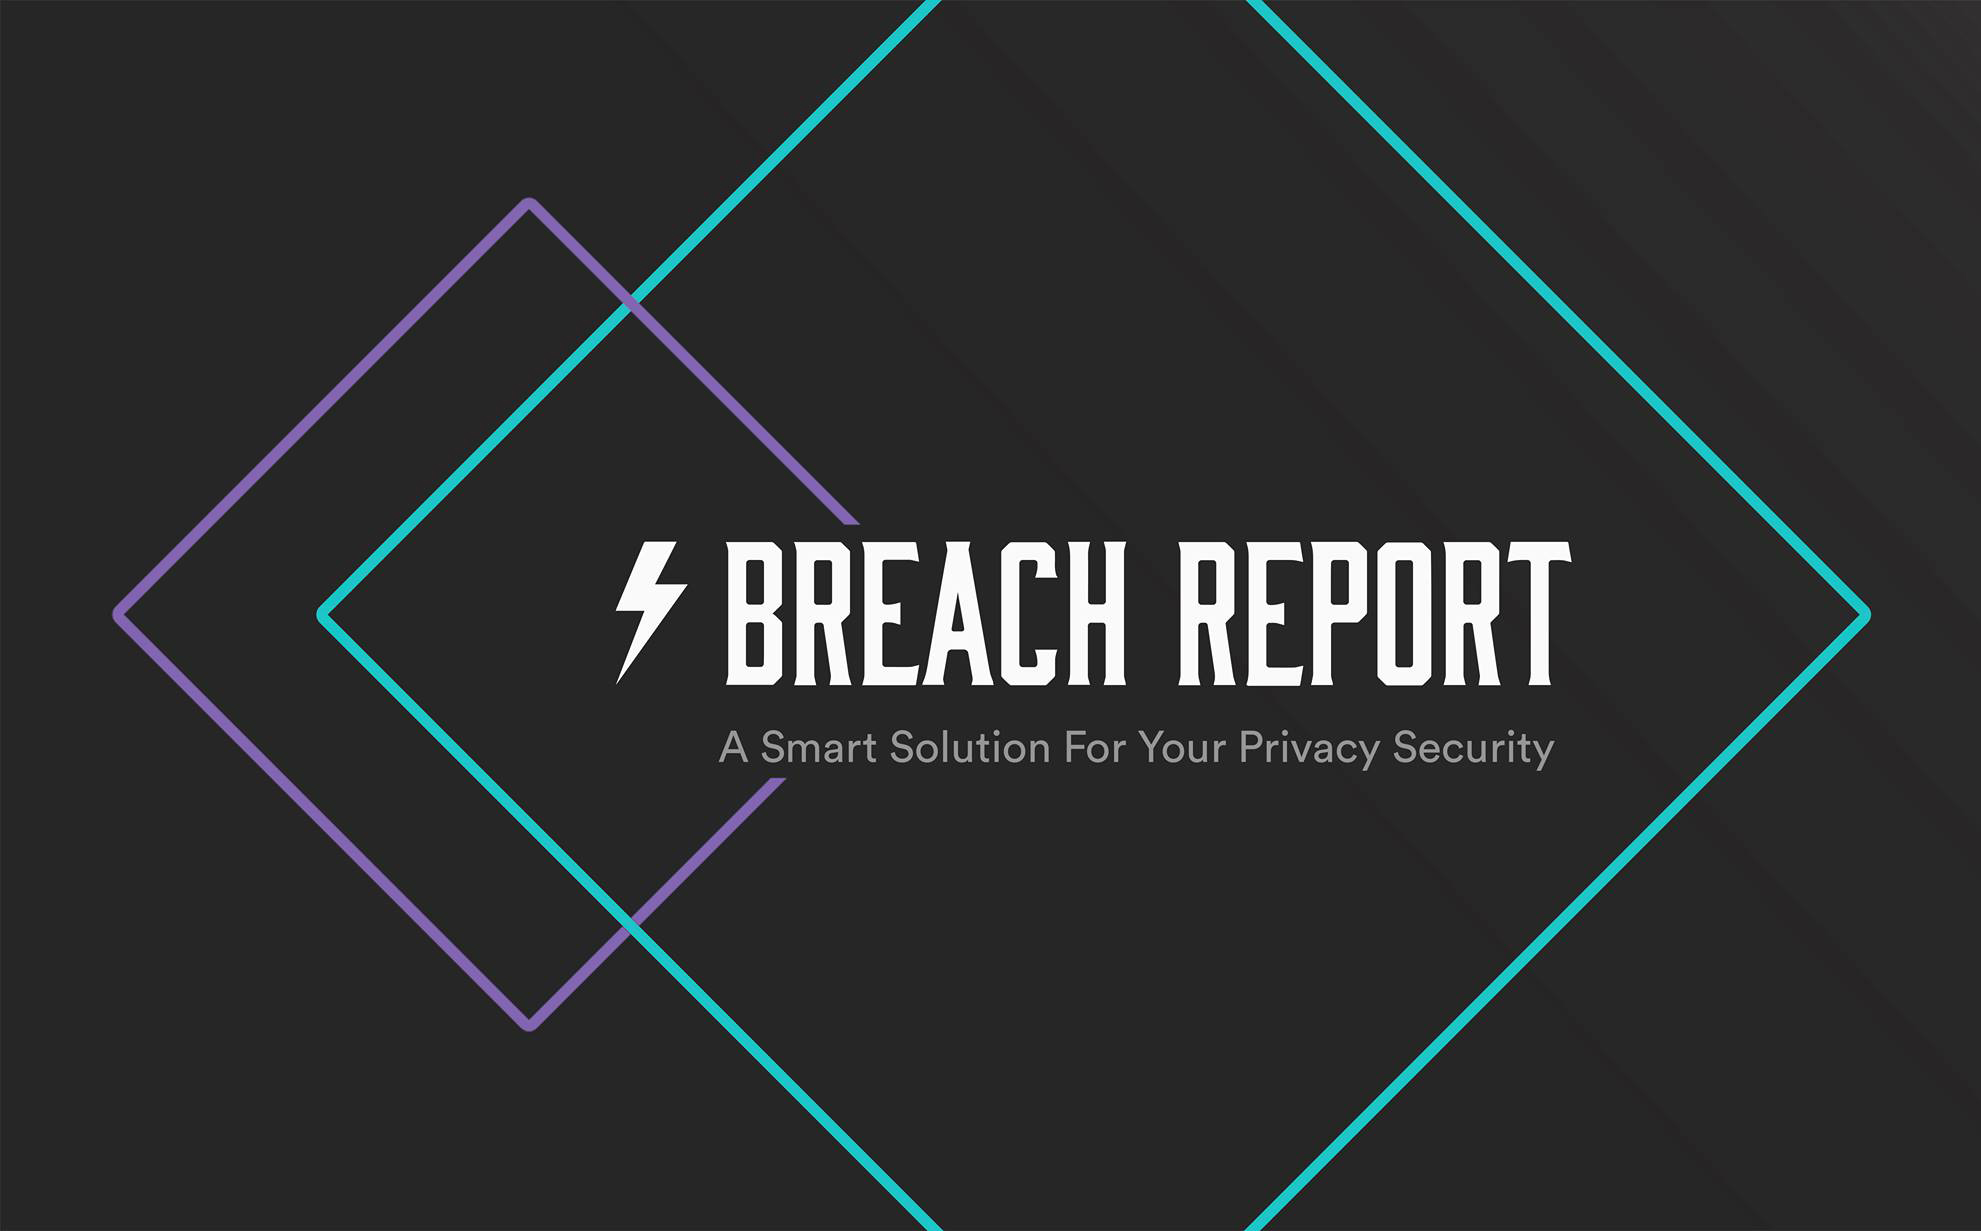 BREACH REPORT LTD Cyber security